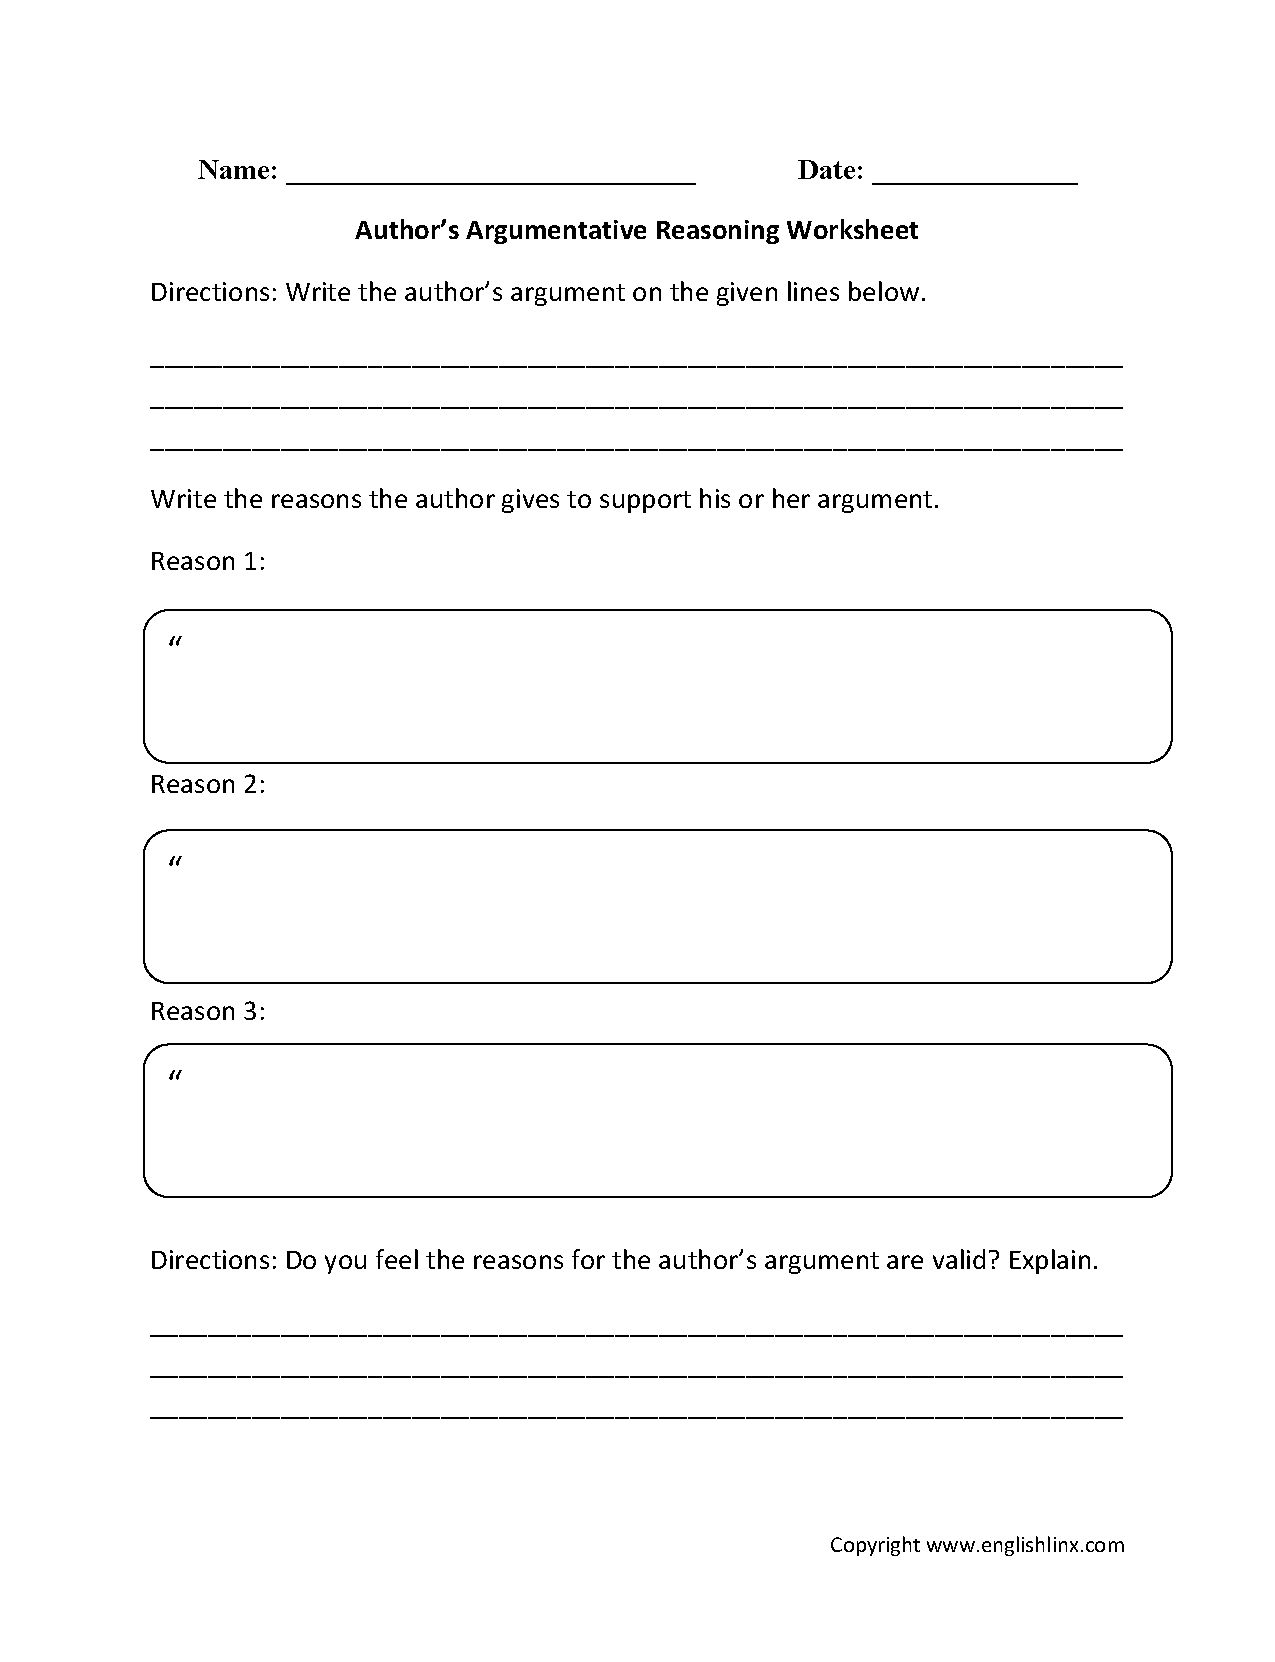 Listening Worksheet For 5th Grade